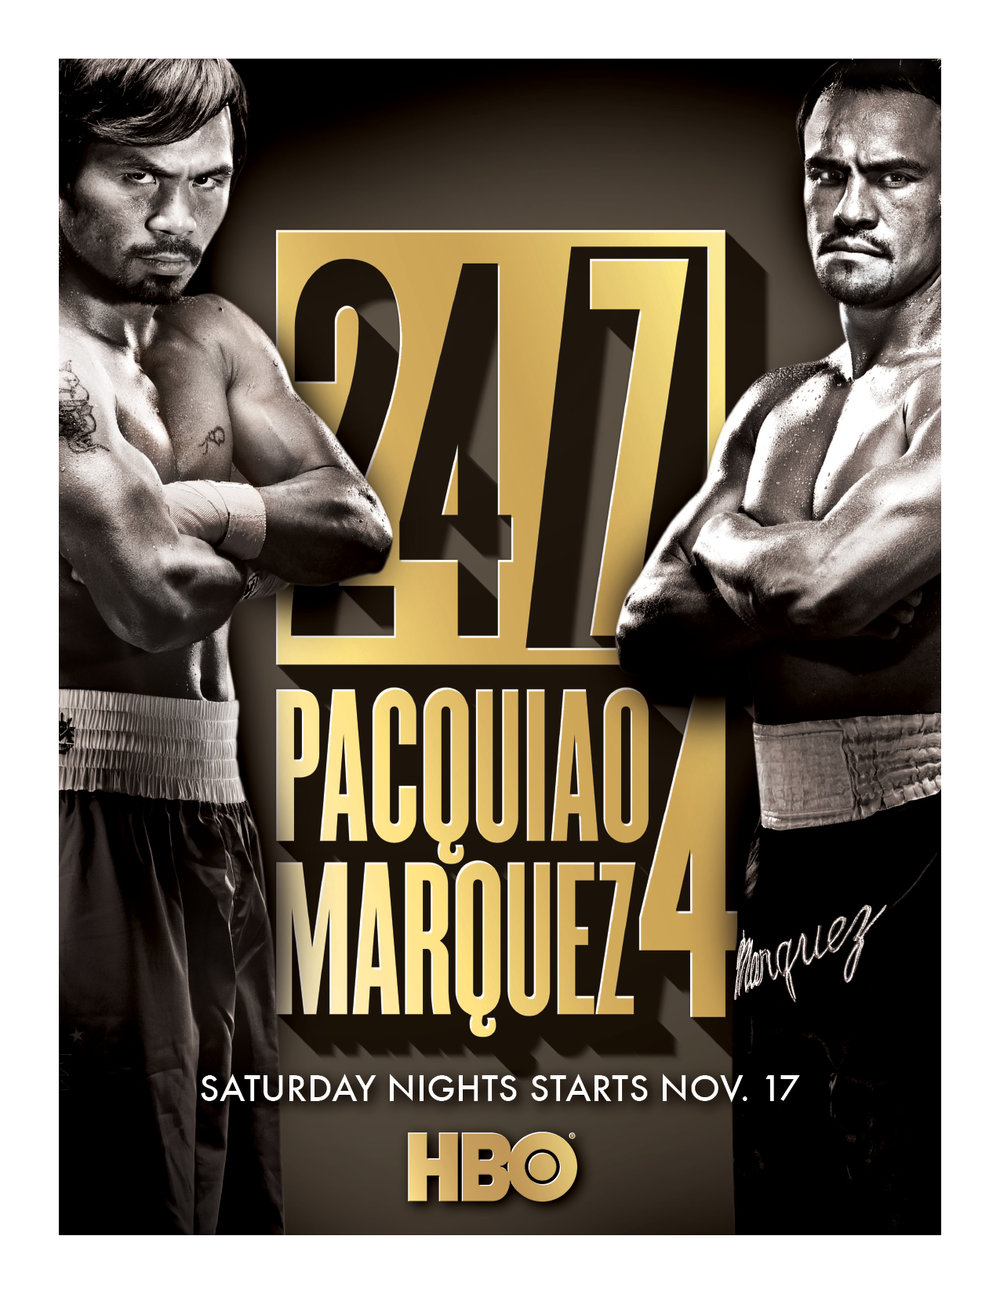 HBO Boxing P360 Website53.jpg